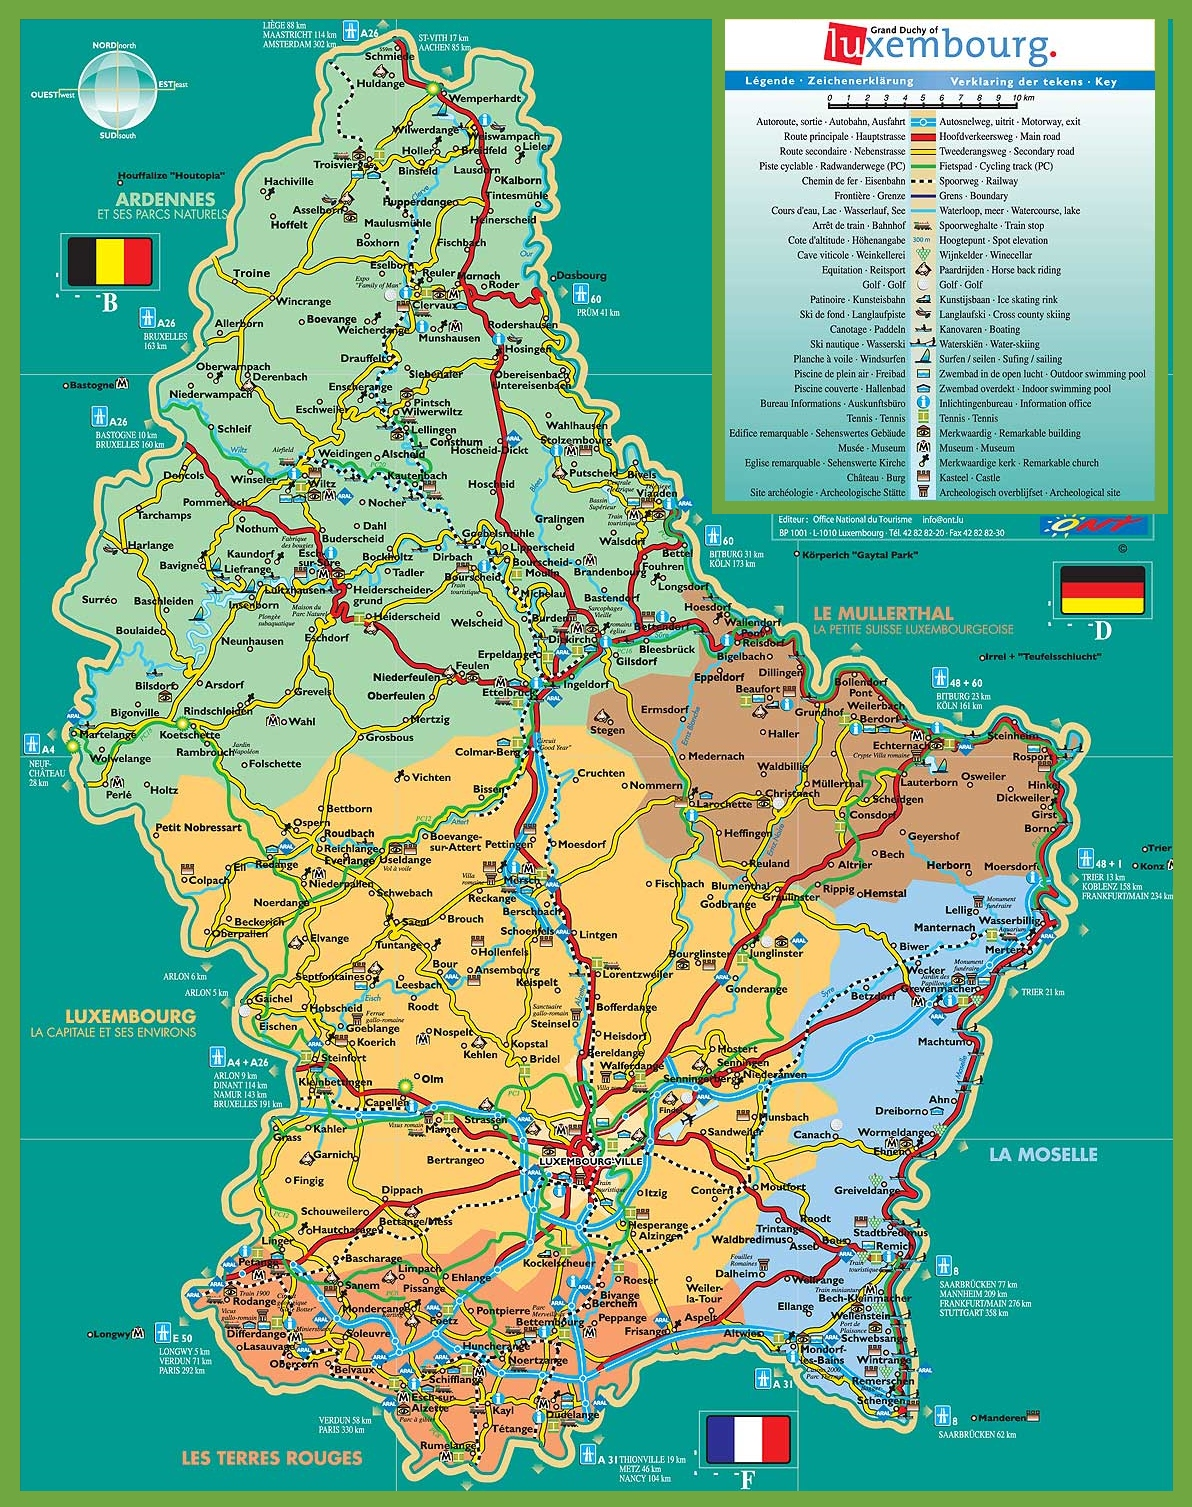 north america map canada with Large Detailed Tourist Map Of Luxembourg on Canada further Cuba besides Glcolor together with Peru Pictures Nazca moreover Extremadura Road Map.